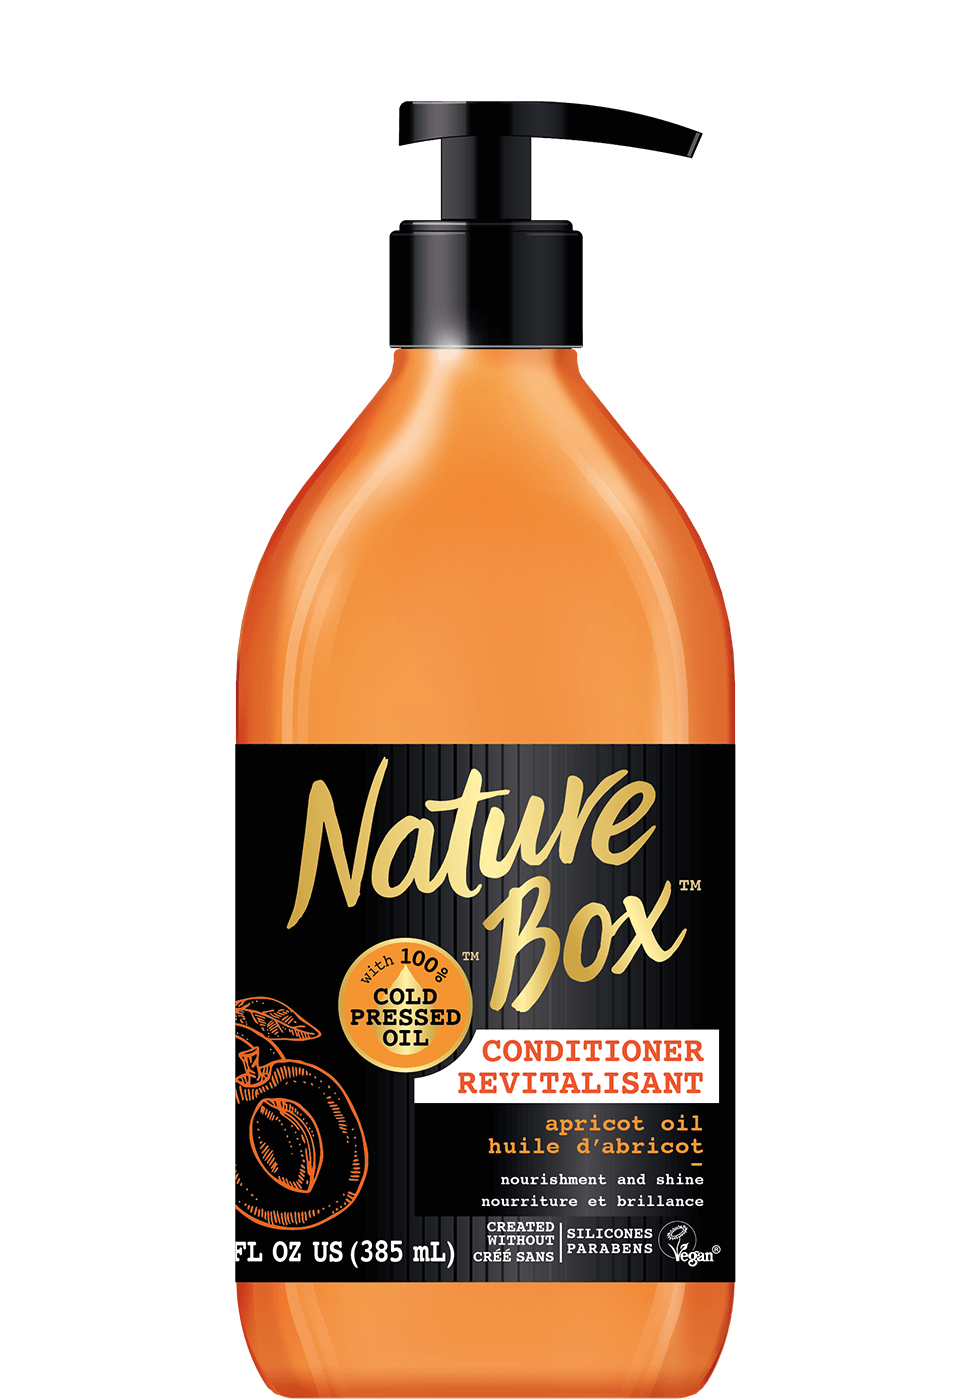 naturebox_ca_en_apricot_conditioner_970x1400